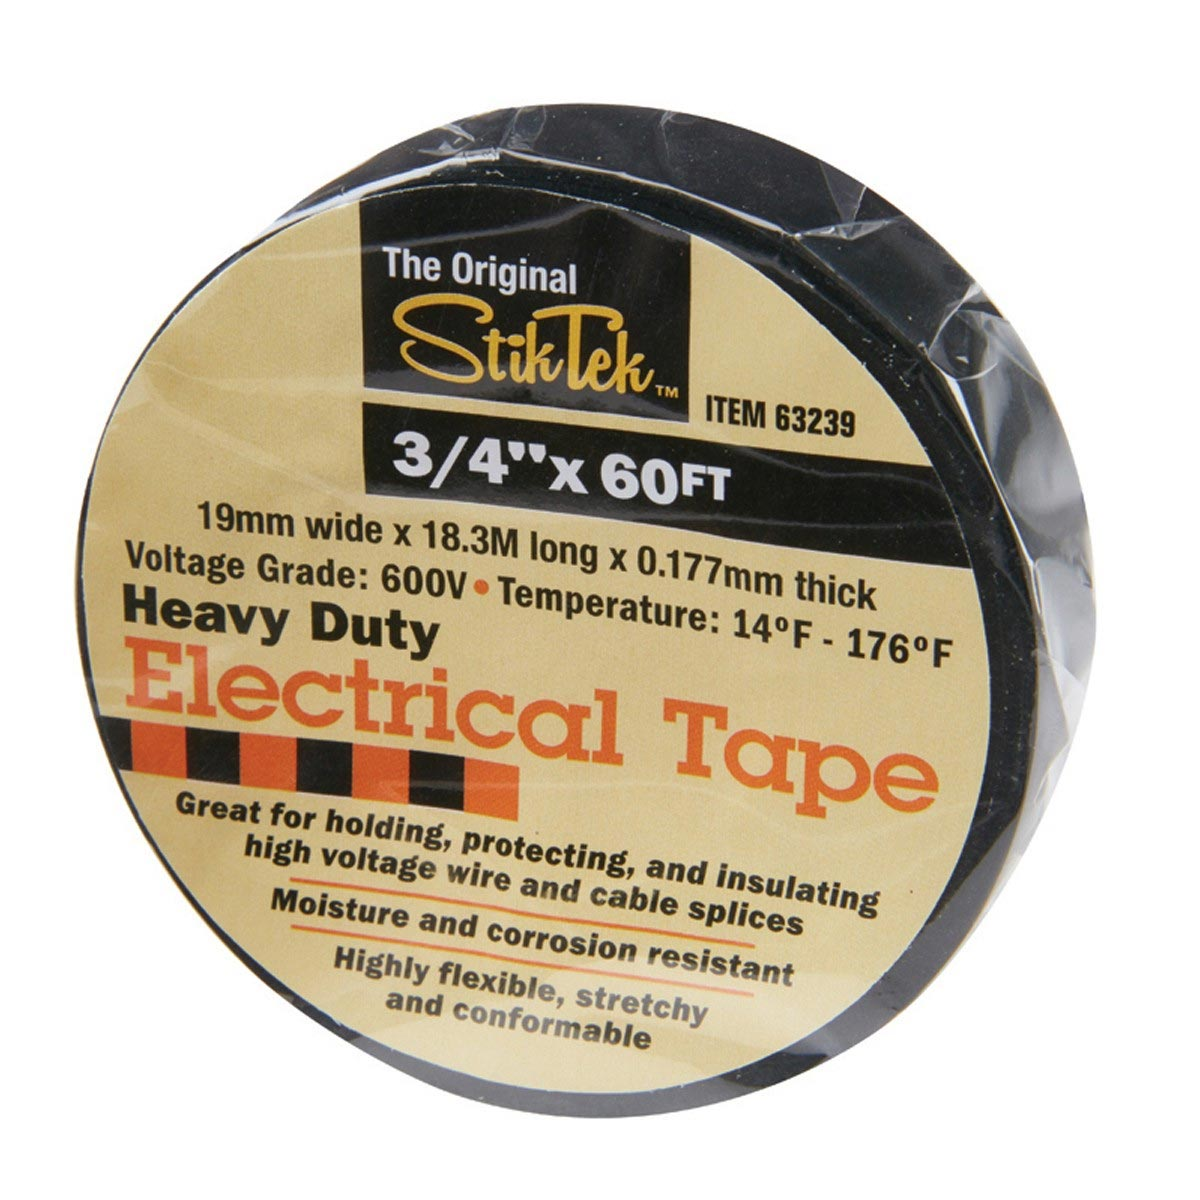 Black Electrical Tape 5MZ89 3/4 in x 60 Ft Industrial Grade Electrical Tape